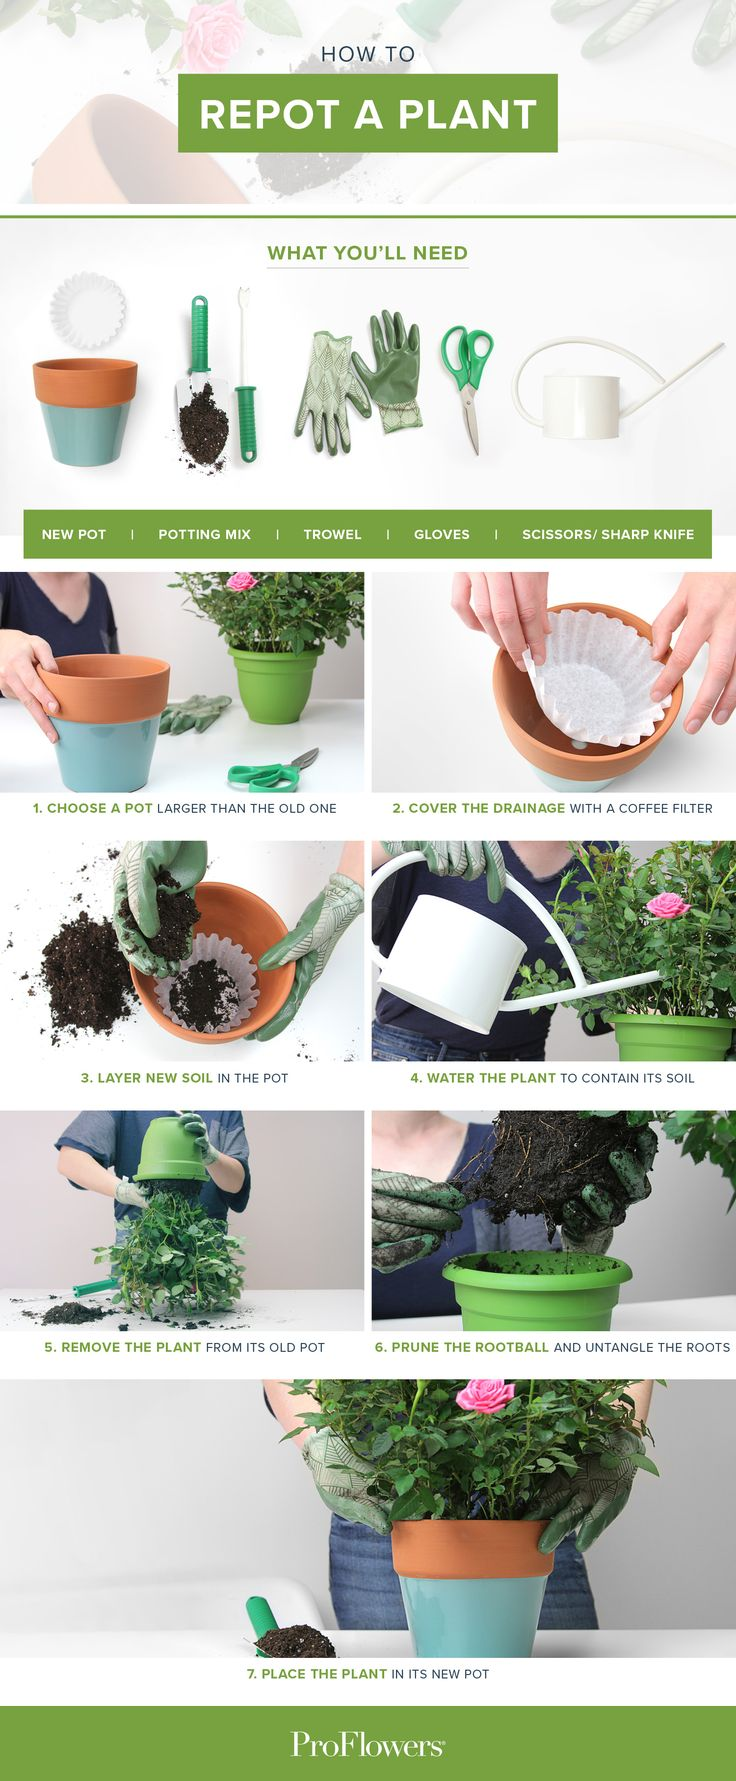 Discover The Latest Tips, Tricks And Expert Secrets To Your Home And Garden  Efforts! DIY And Handy Household And Gardening Ideas To Make Your Life  Easier ...